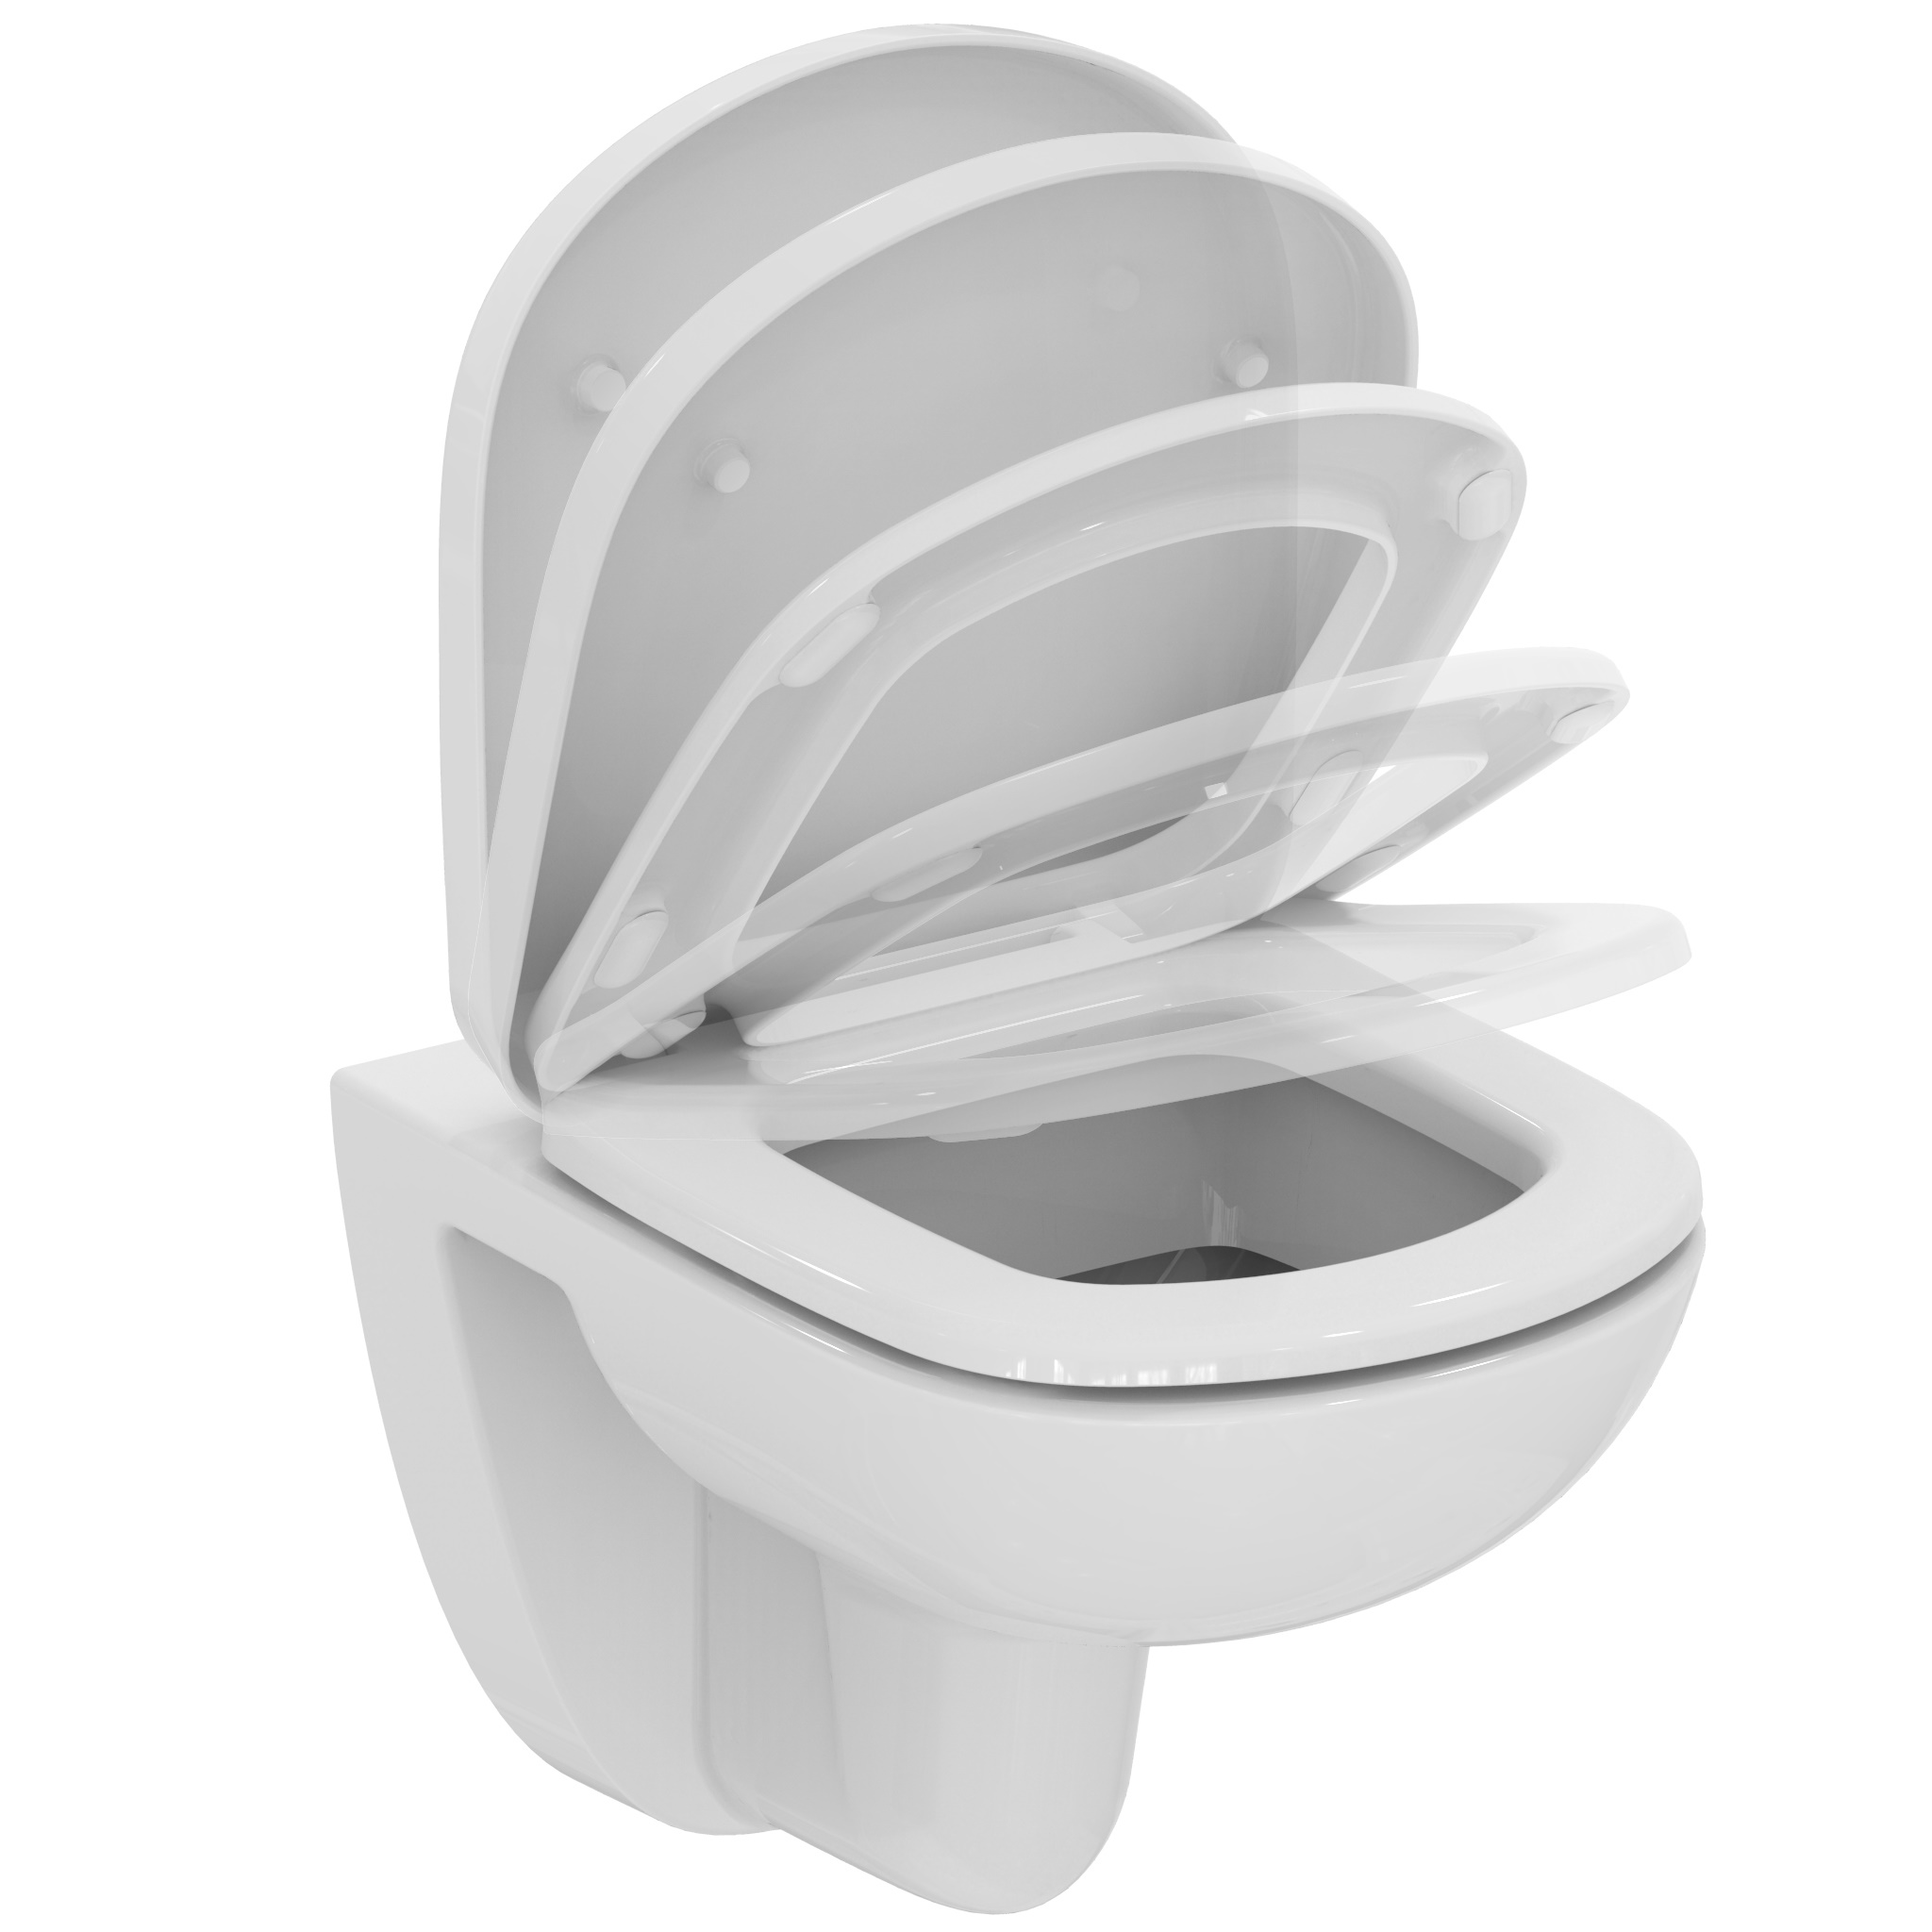 Ideal standard abattant wc for Lunette wc ideal standard